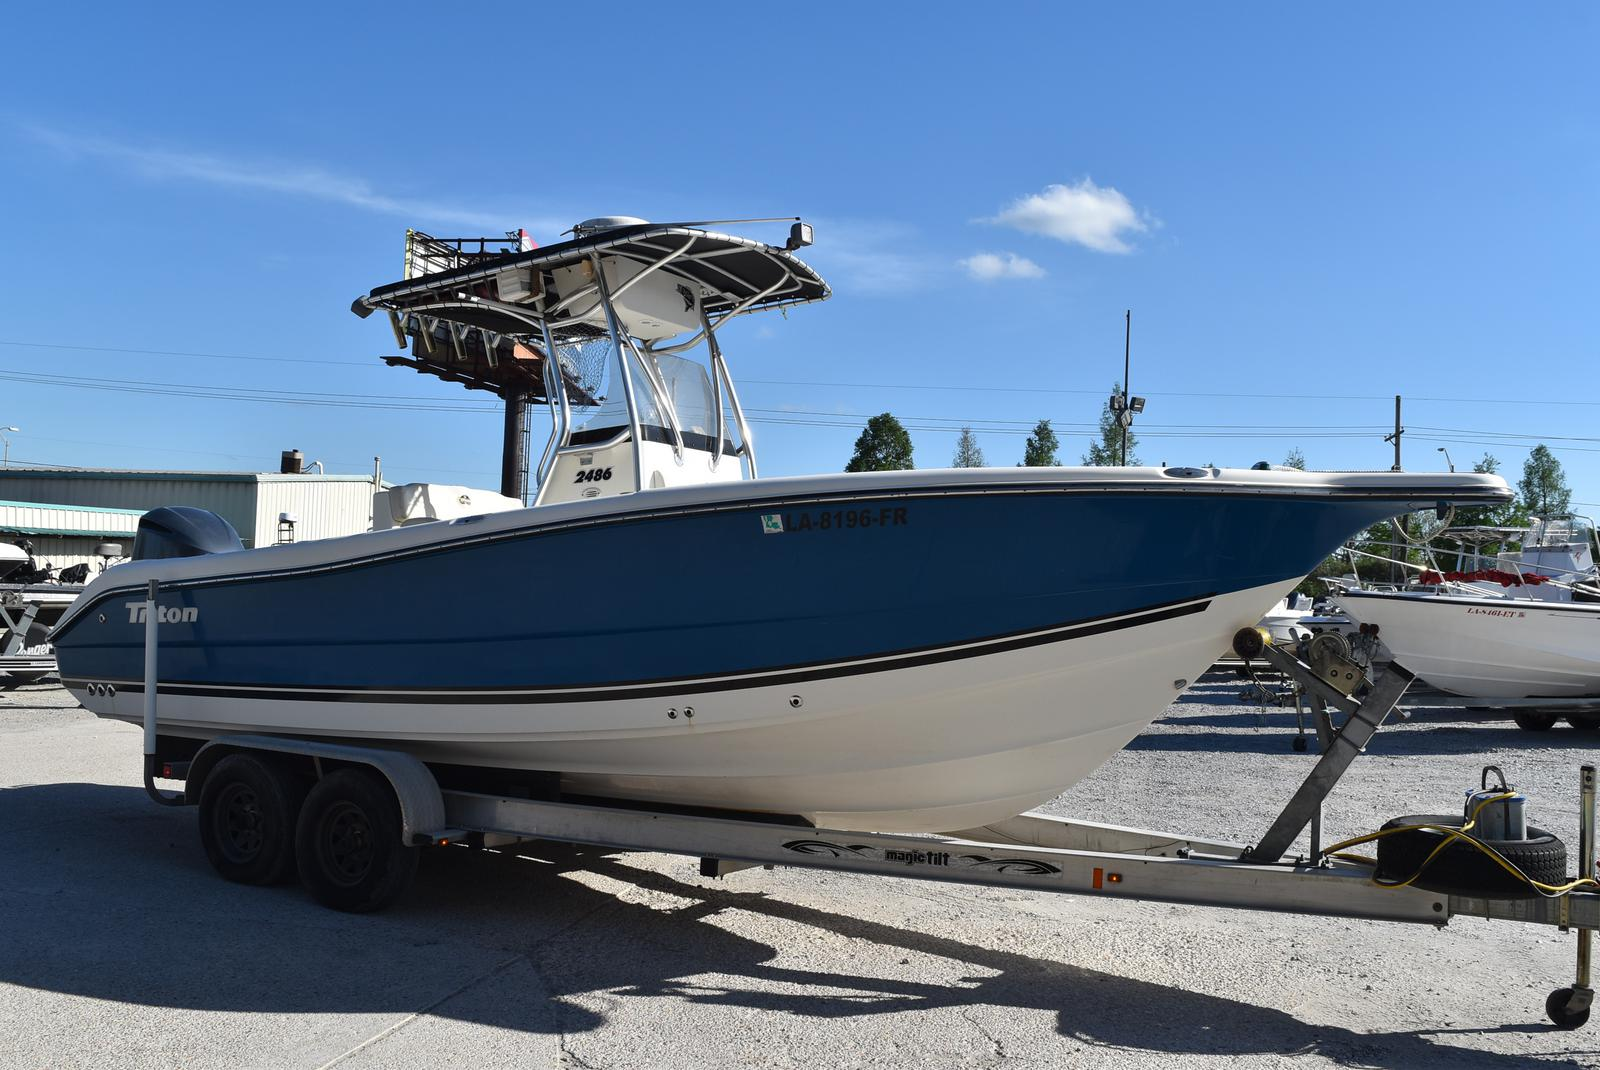 2006 Triton boat for sale, model of the boat is 2486 & Image # 11 of 24